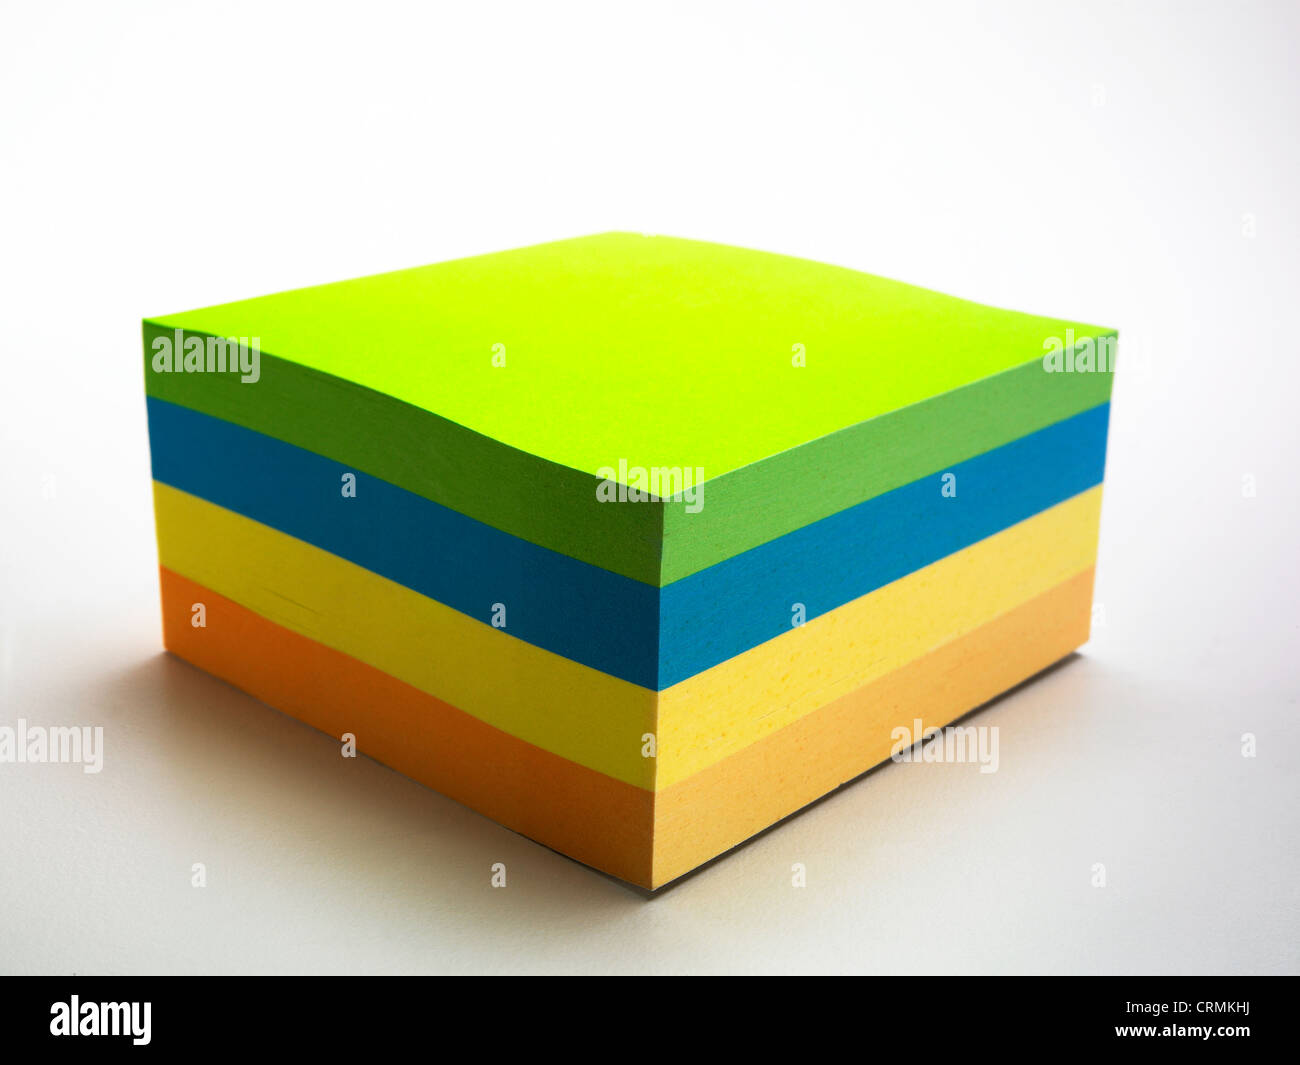 A block of coloured sticky notes - Stock Image